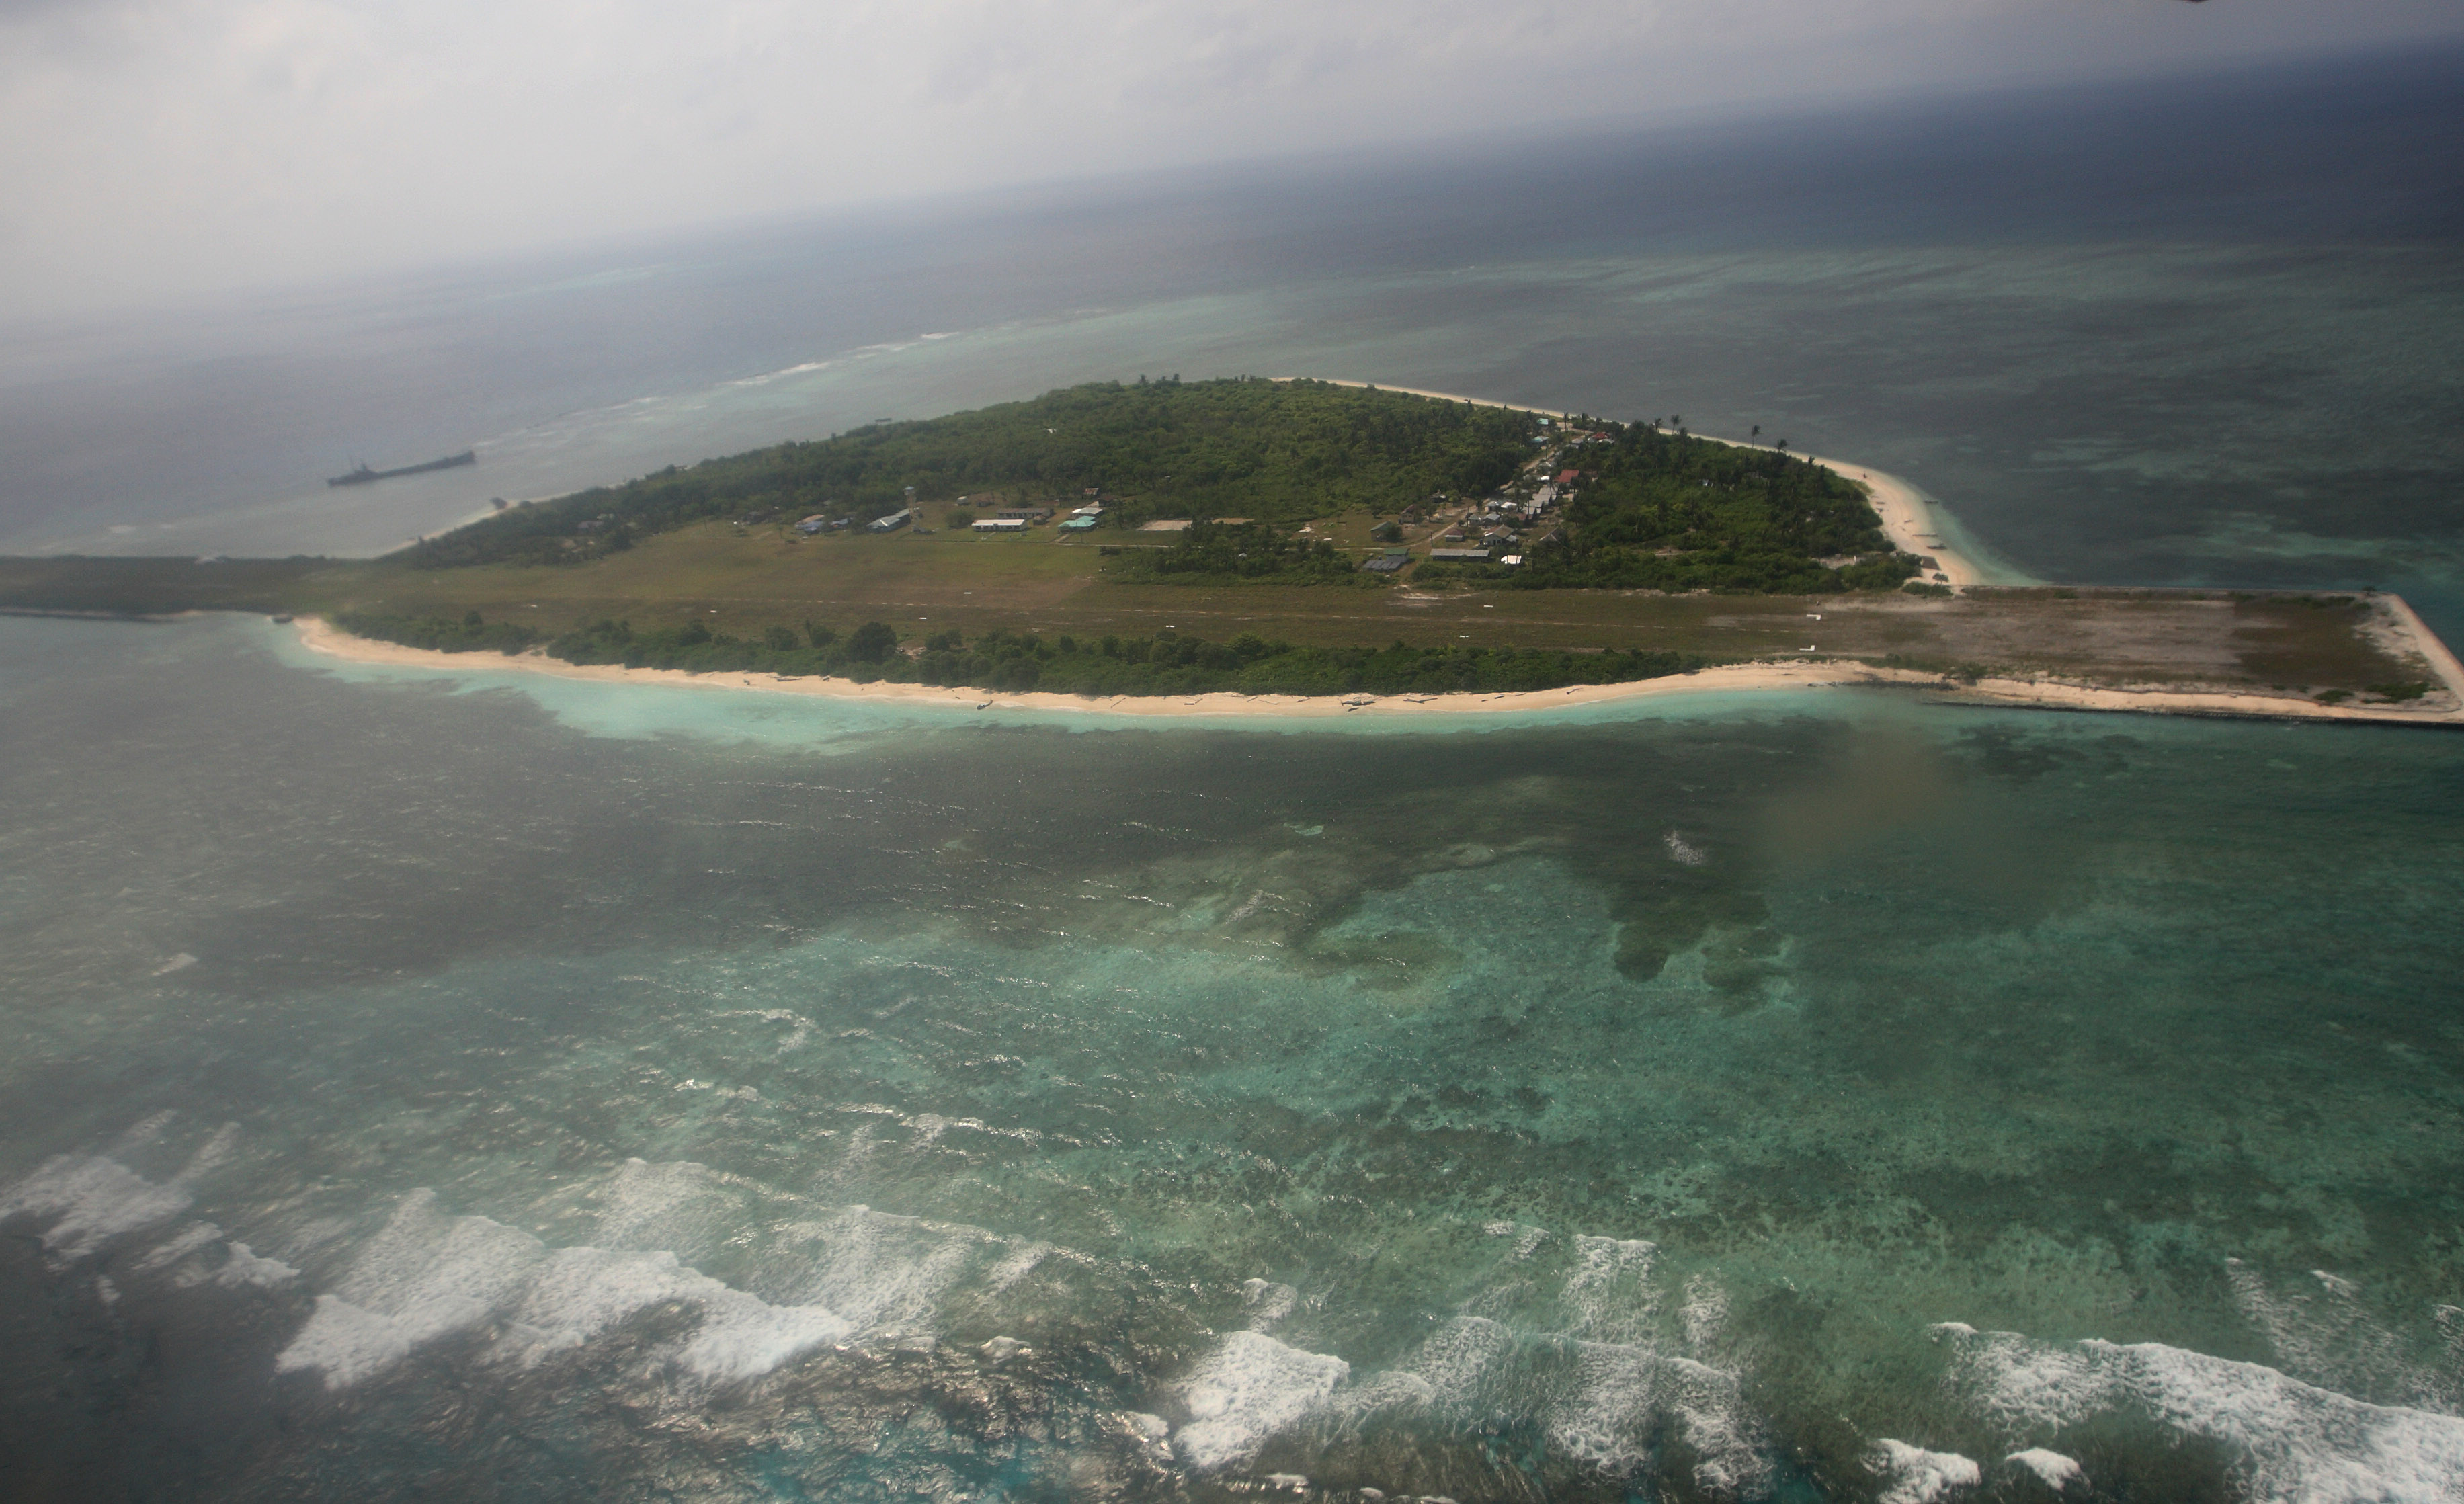 An aerial photo shows Thitu Island, part of the disputed Spratly group of islands, in the South China Sea located off the coast of western Philippines on July 20, 2011.  Philippine lawmakers flew to an island in the disputed Spratly chain, despite warnings from China that the trip would destabilise the region and damage ties.   AFP PHOTO / POOL / AFP PHOTO / POOL / ROLEX DELA PENA